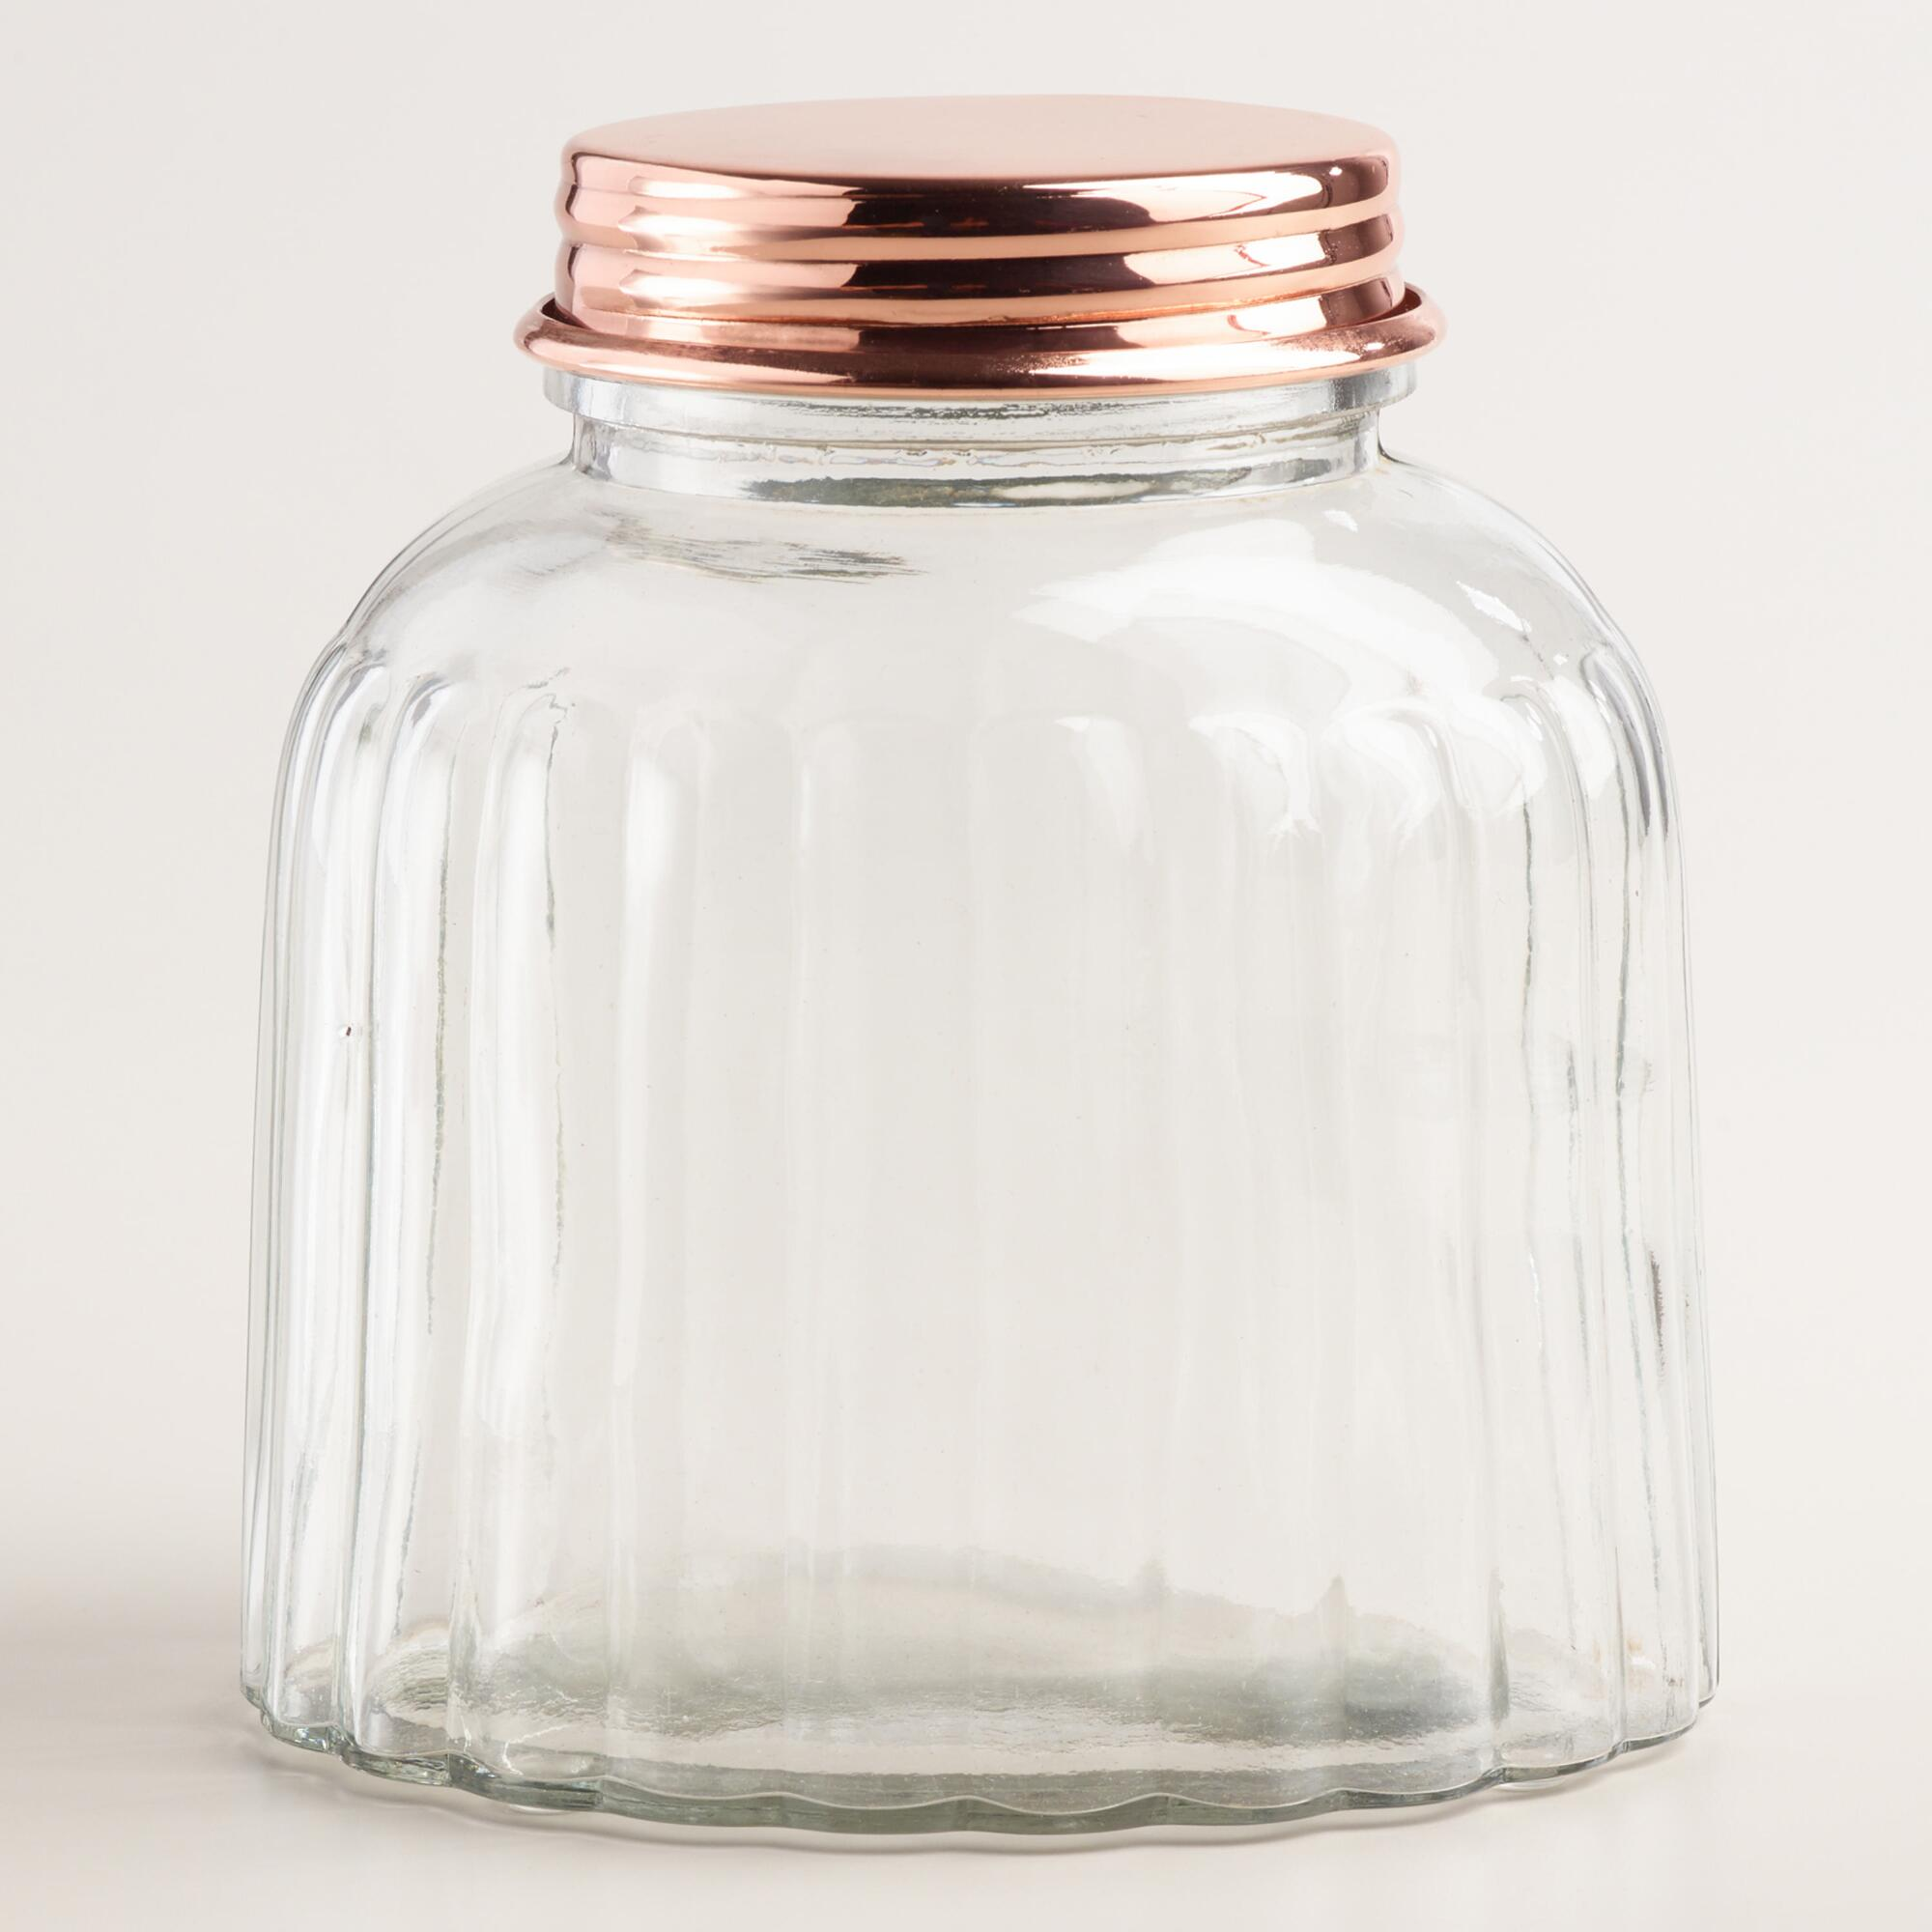 Our Glass Slant Jar with Metal Lid is a best-selling option in large capacity glass food storage. It's great for flour, sugar, coffee, tea or rice. The unsurpassed visibility makes it easy to quickly identify the contents - especially advantageous when it's used as a candy or cookie jar!